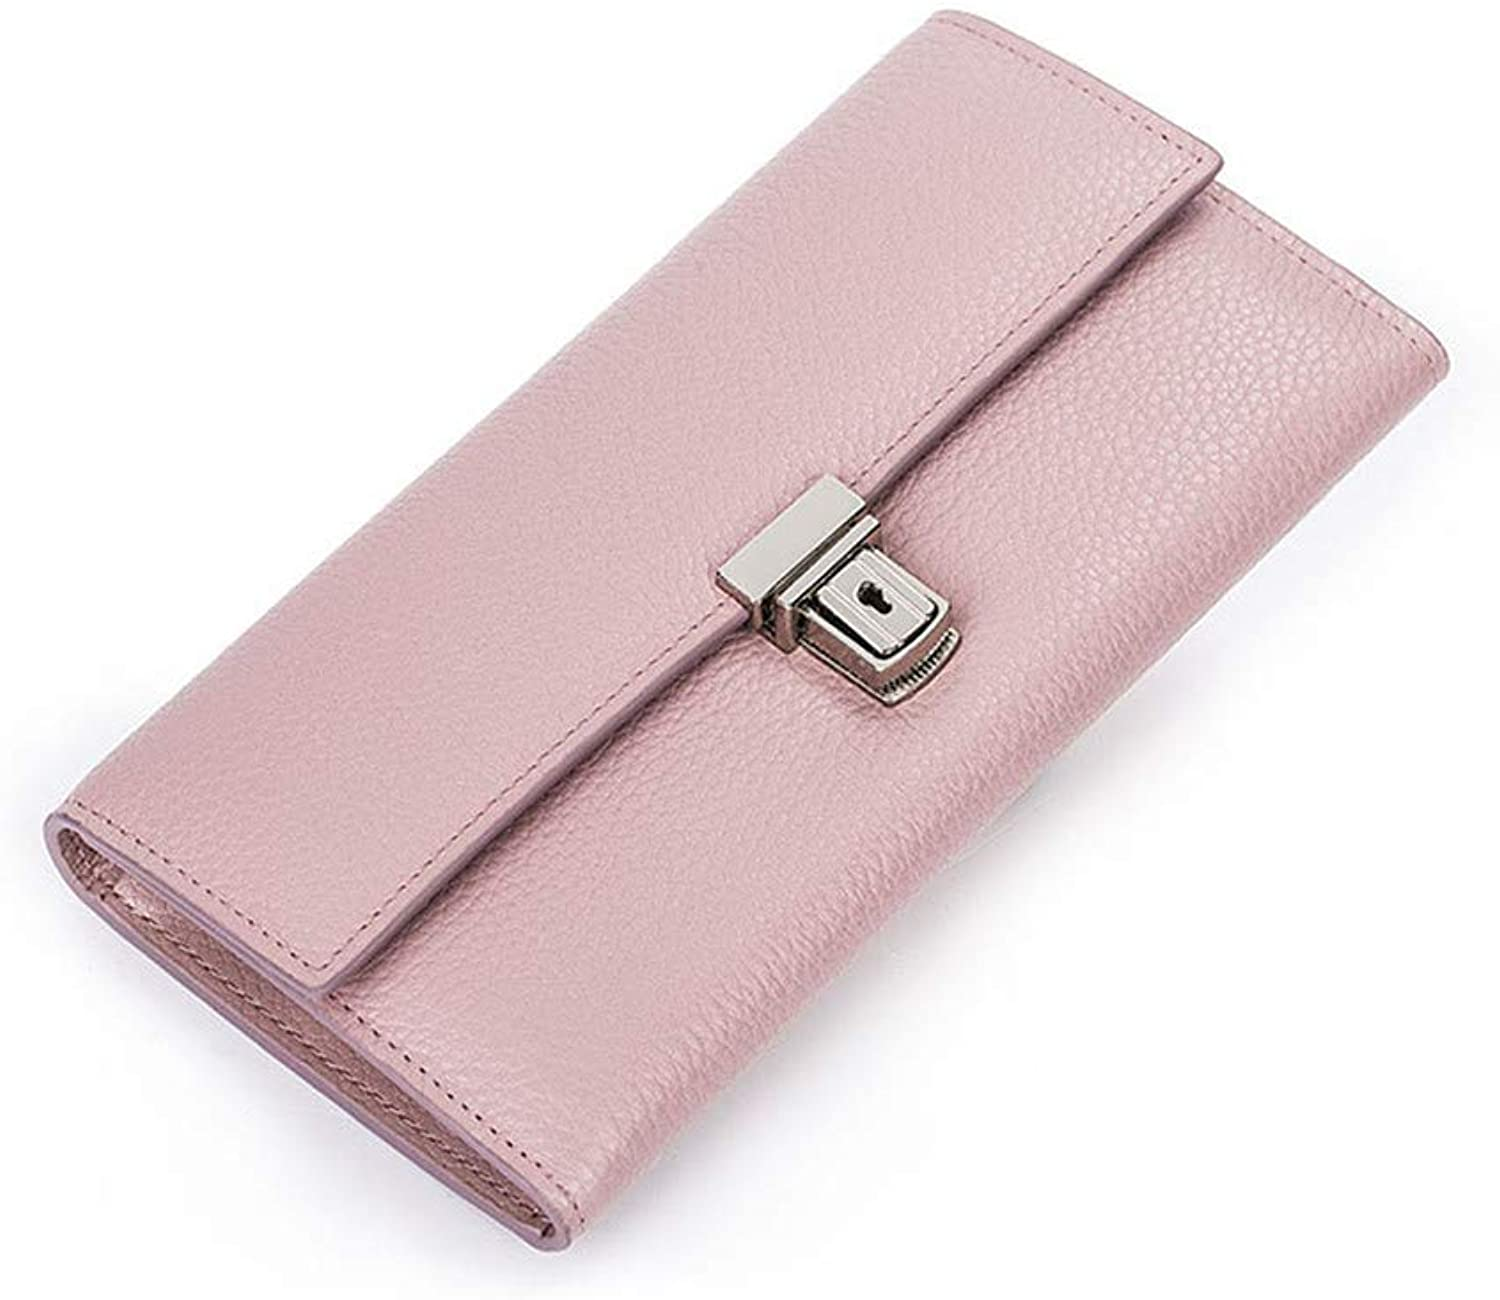 Leather Multicolor Optional Women's Elegant Purse Hand Bag Contracted Metal Button is Dinner Bag Business Gifts Women's Wallet with Many Card Slots Gifts for Women and Girls (color   Pink)